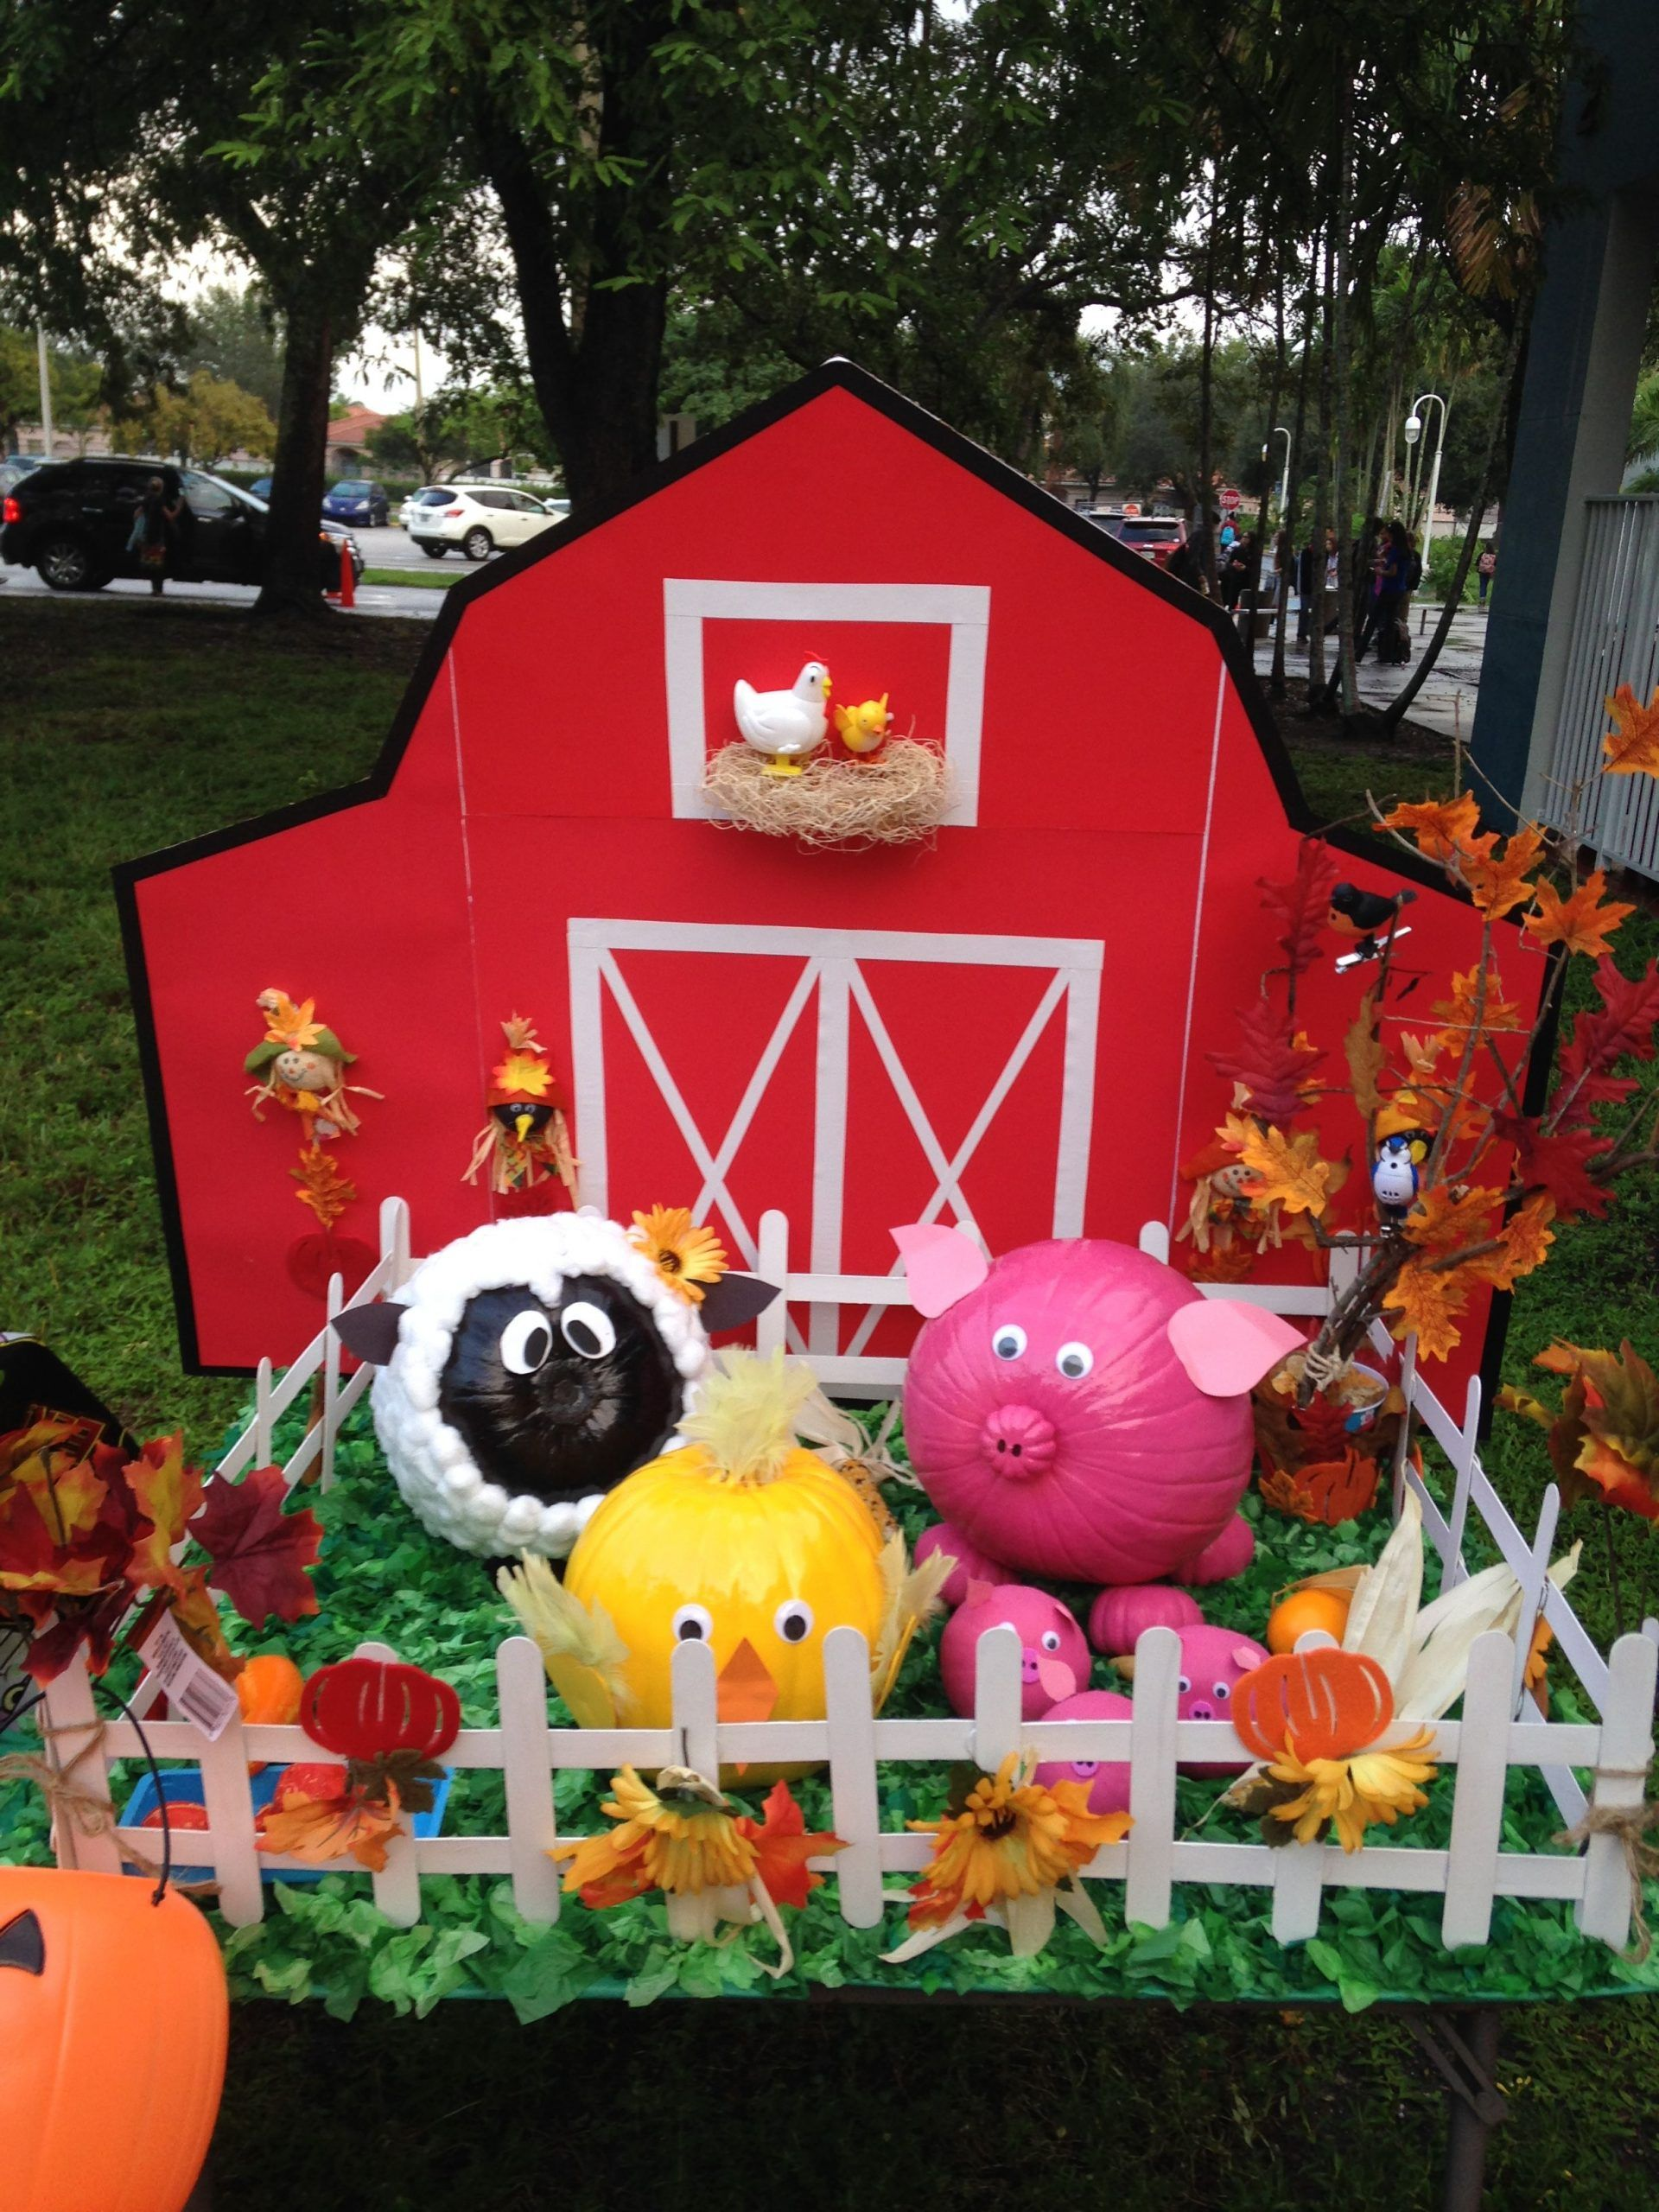 Farm animals with pumpkins. Farm animals made with